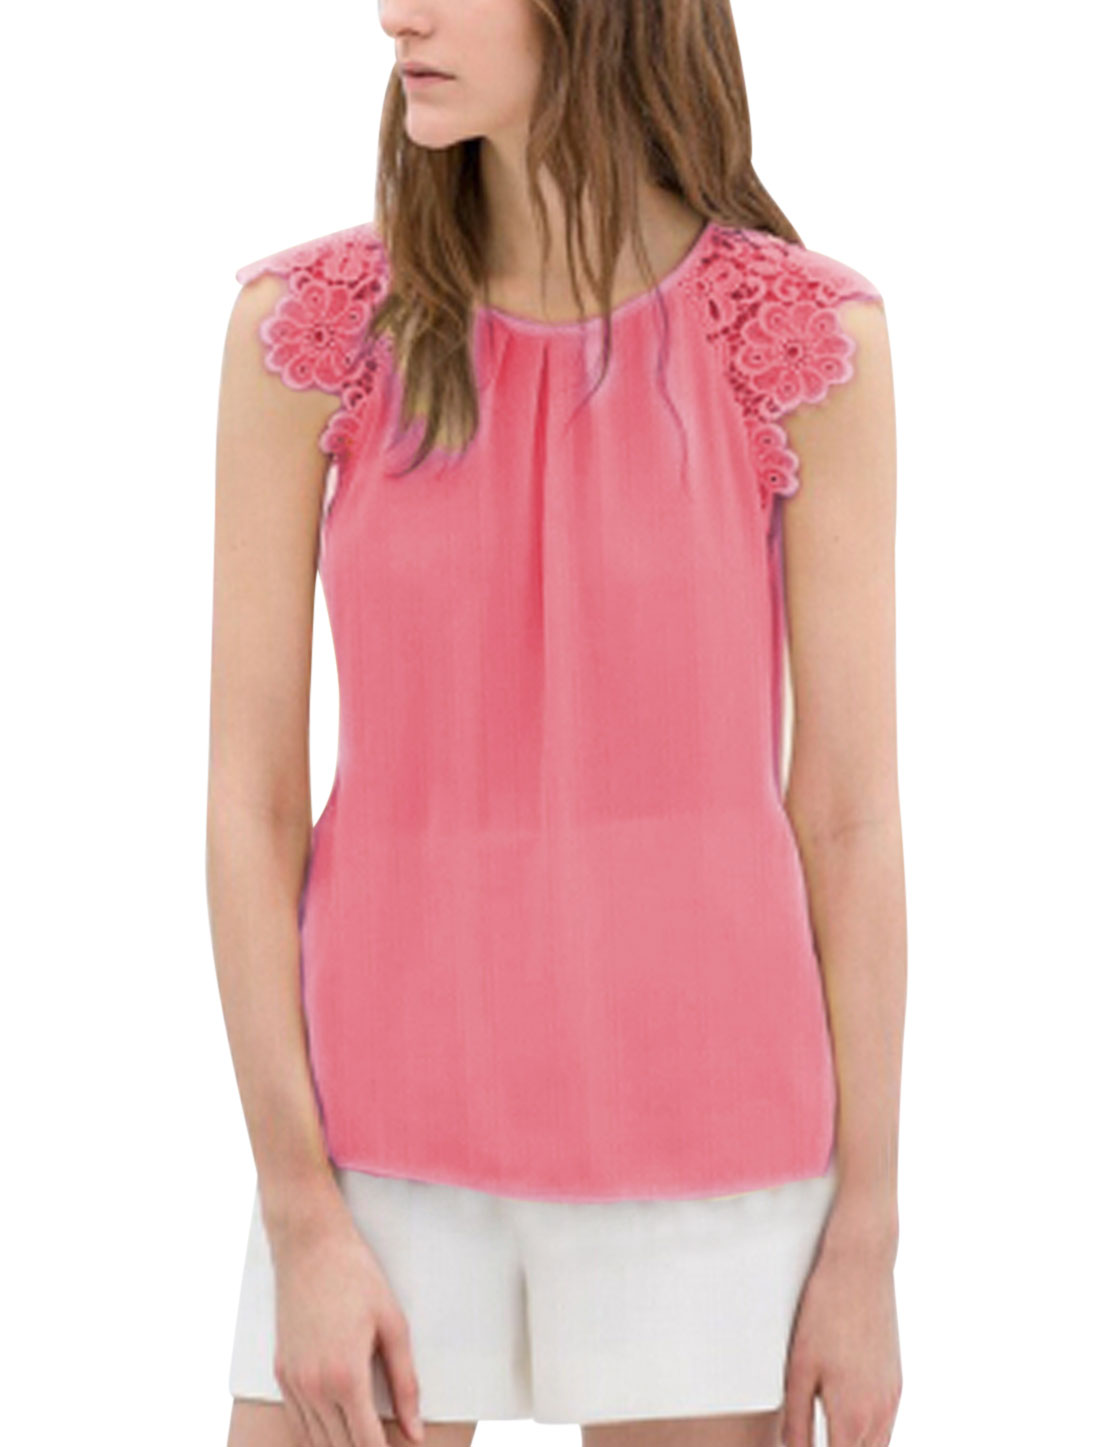 Lady Crochet Shoulder Simple Color Sleeveless Chiffon Blouse Dark Pink L